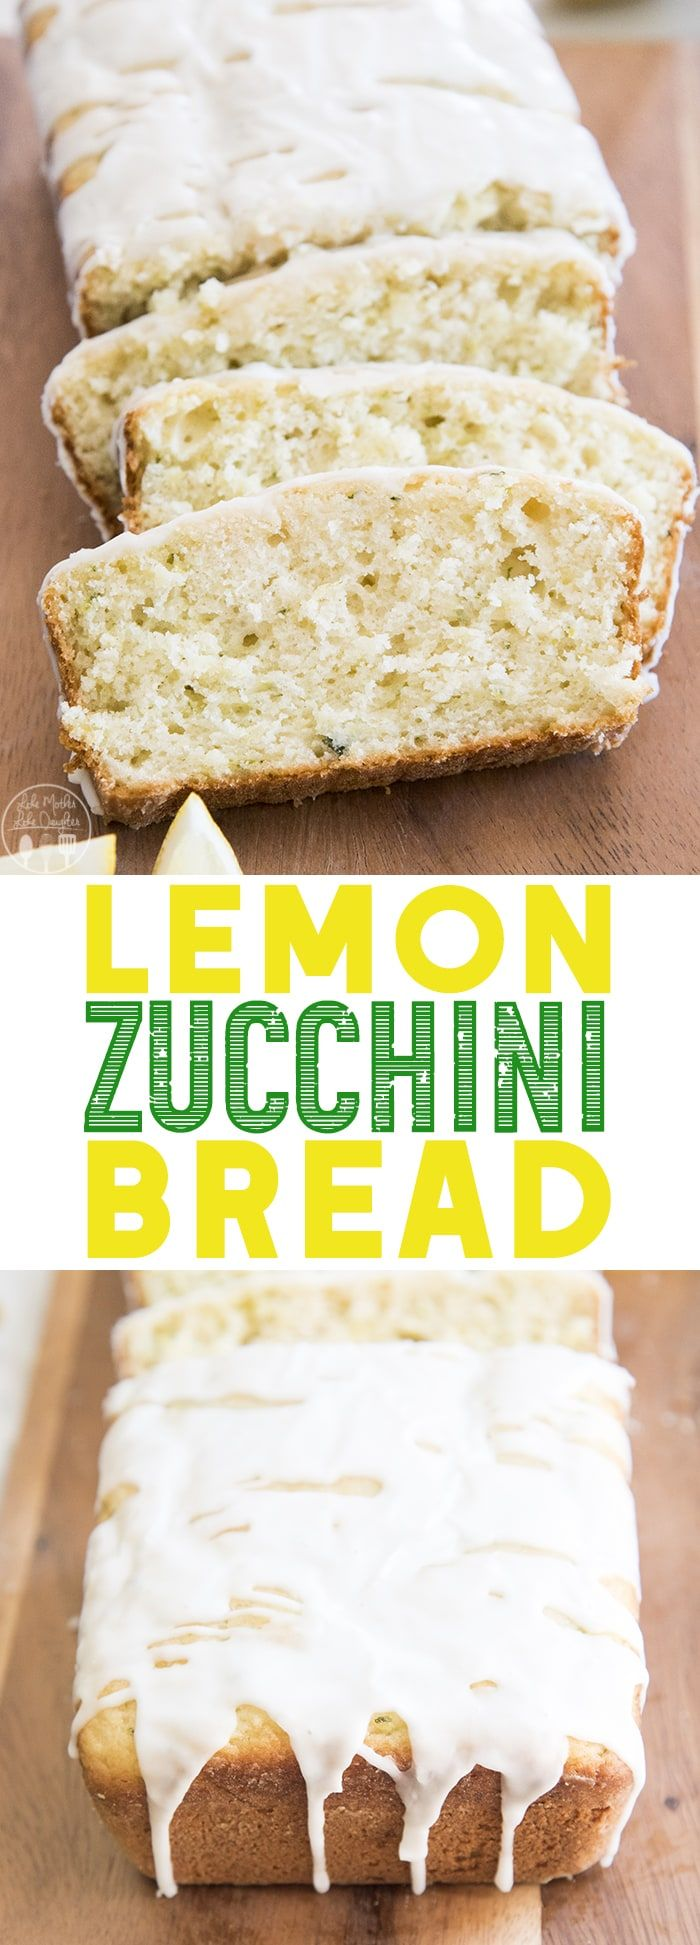 lemon zucchini bread is the perfect twist on traditional